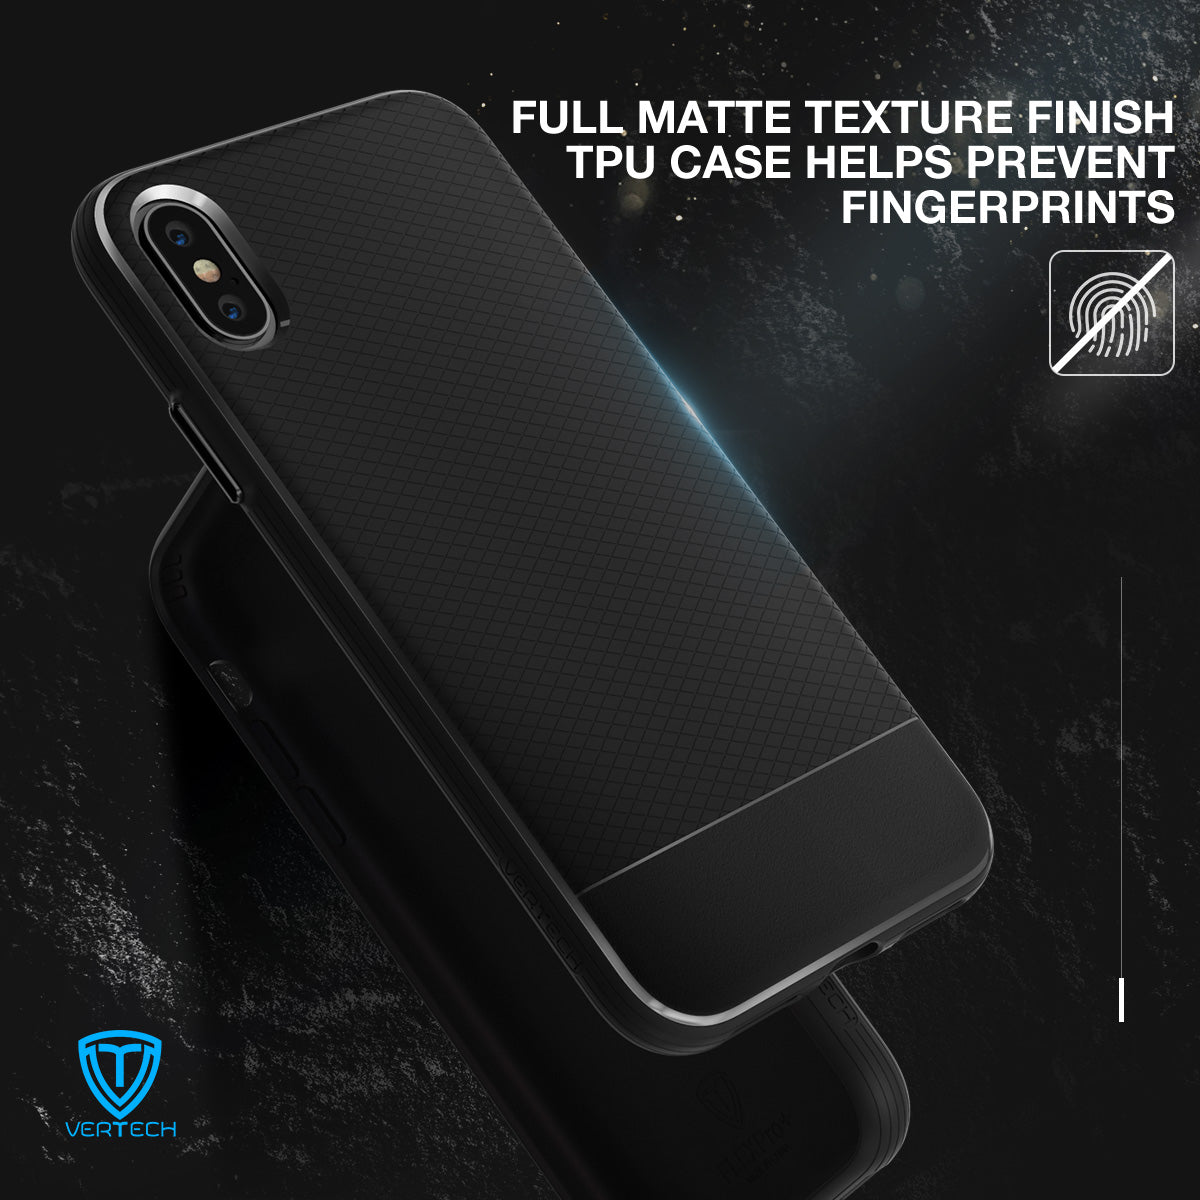 iPhone X Case, Vertech [FlexPro+ Series]  Slim Protective Shock Absorbing TPU Rugged Protection Textured Grip Black and Easy Grip Design for Apple iPhone X